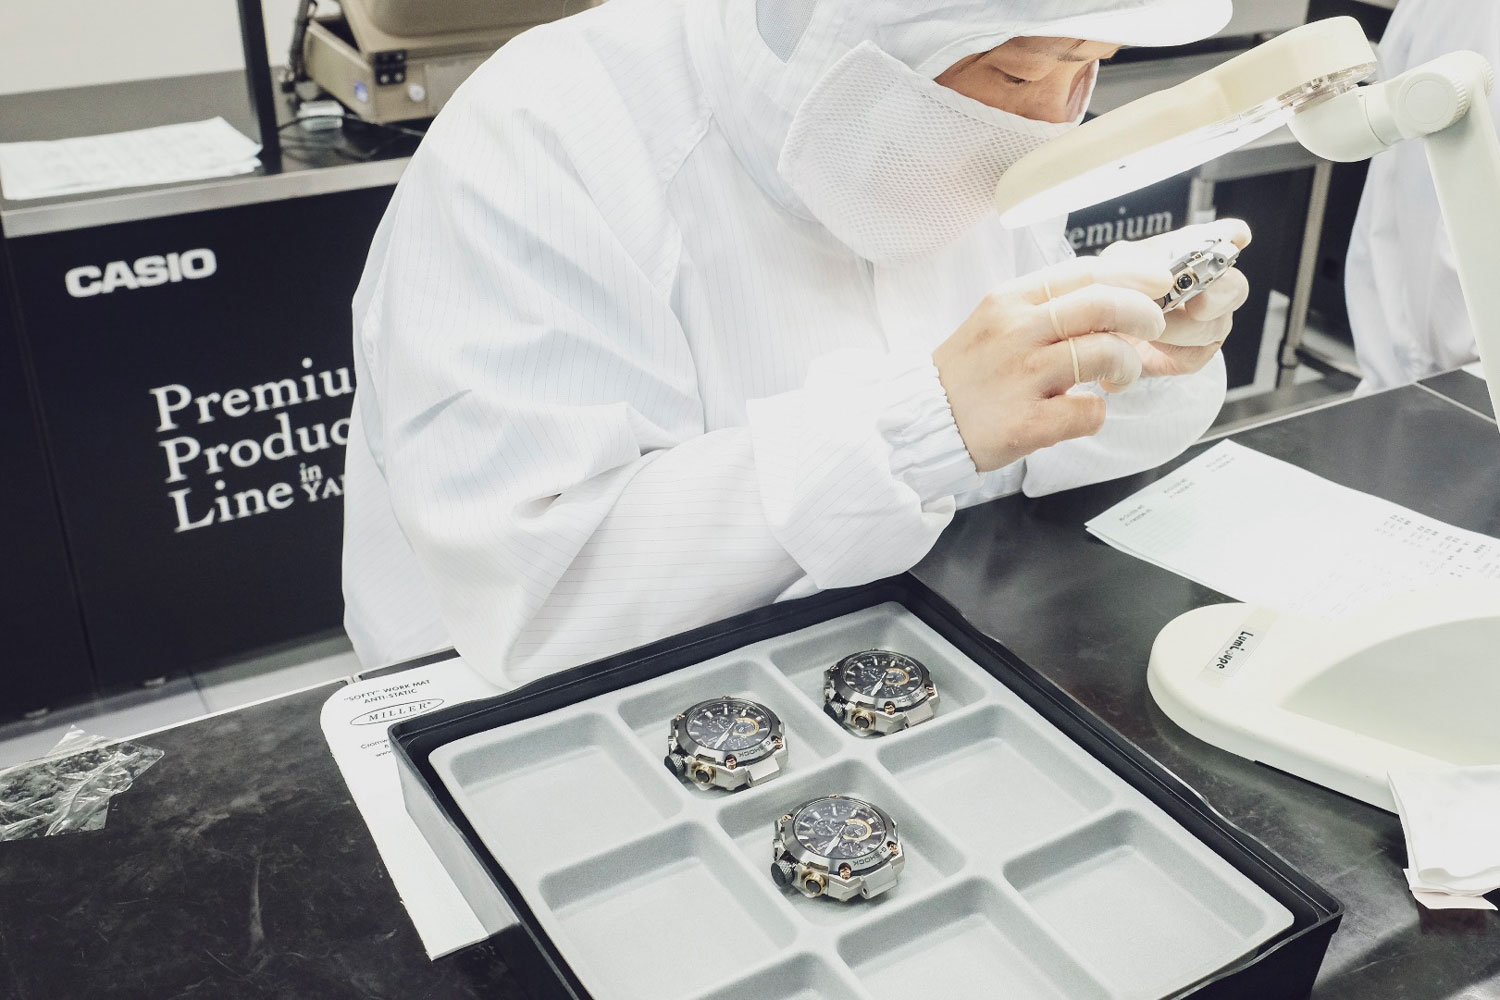 While at the G-Shock Premium Product Line factory in Yamagata (Image © Revolution)